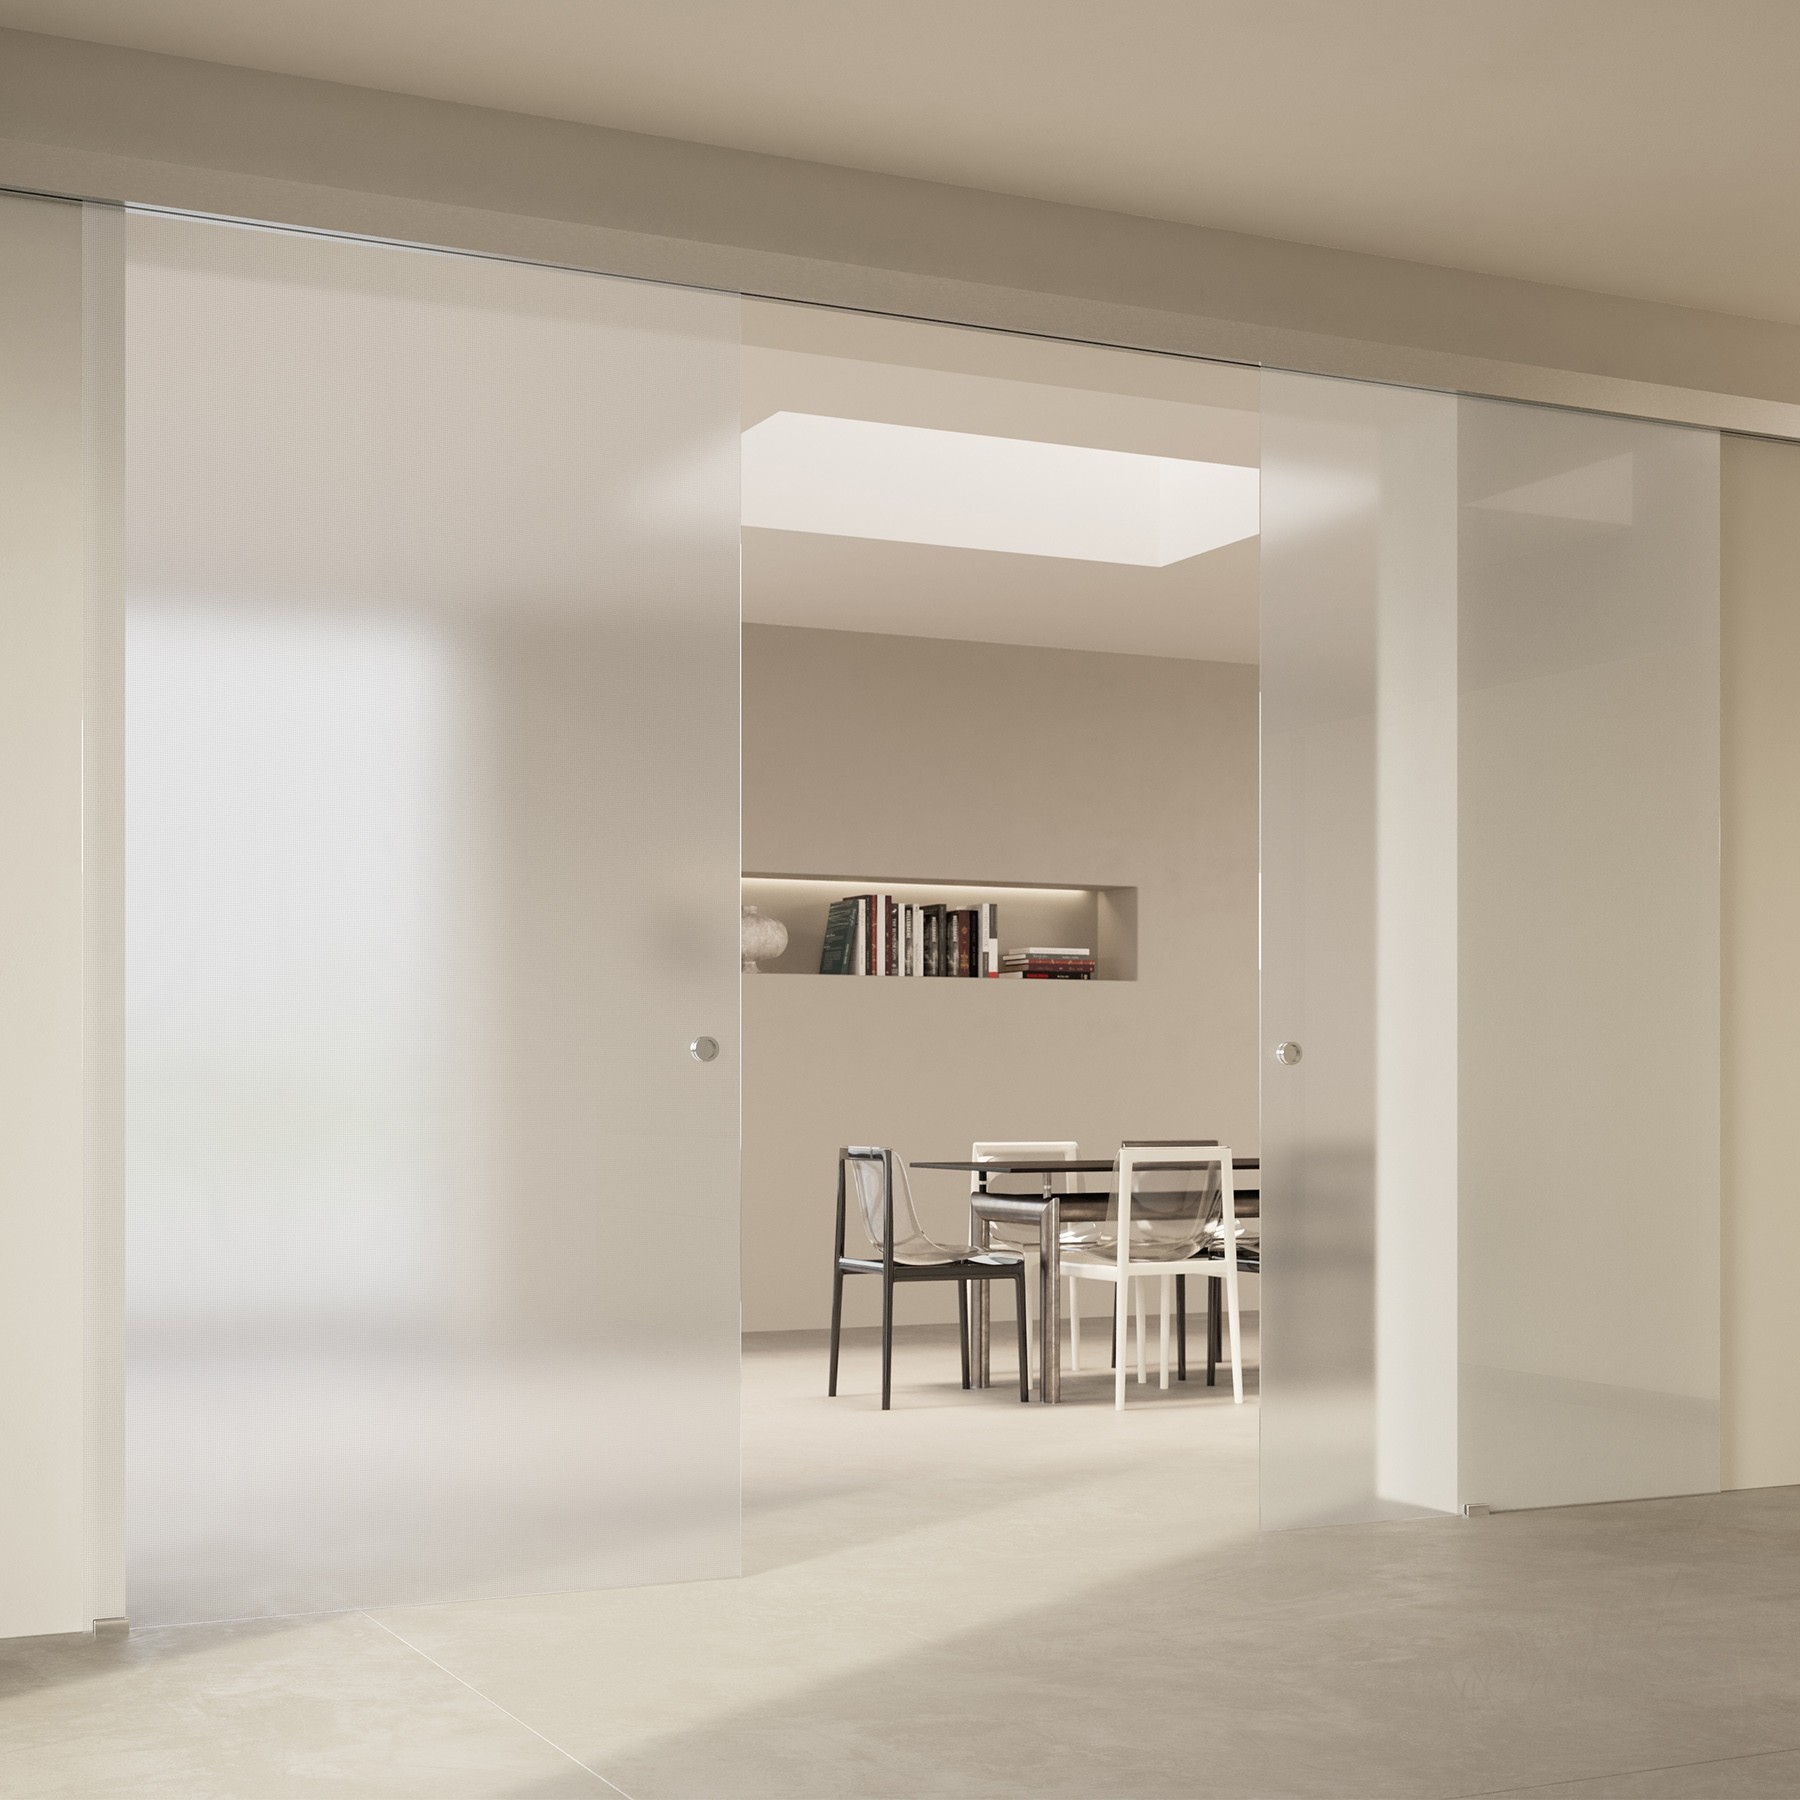 Scenario Visio with Point frosted extraclear glass